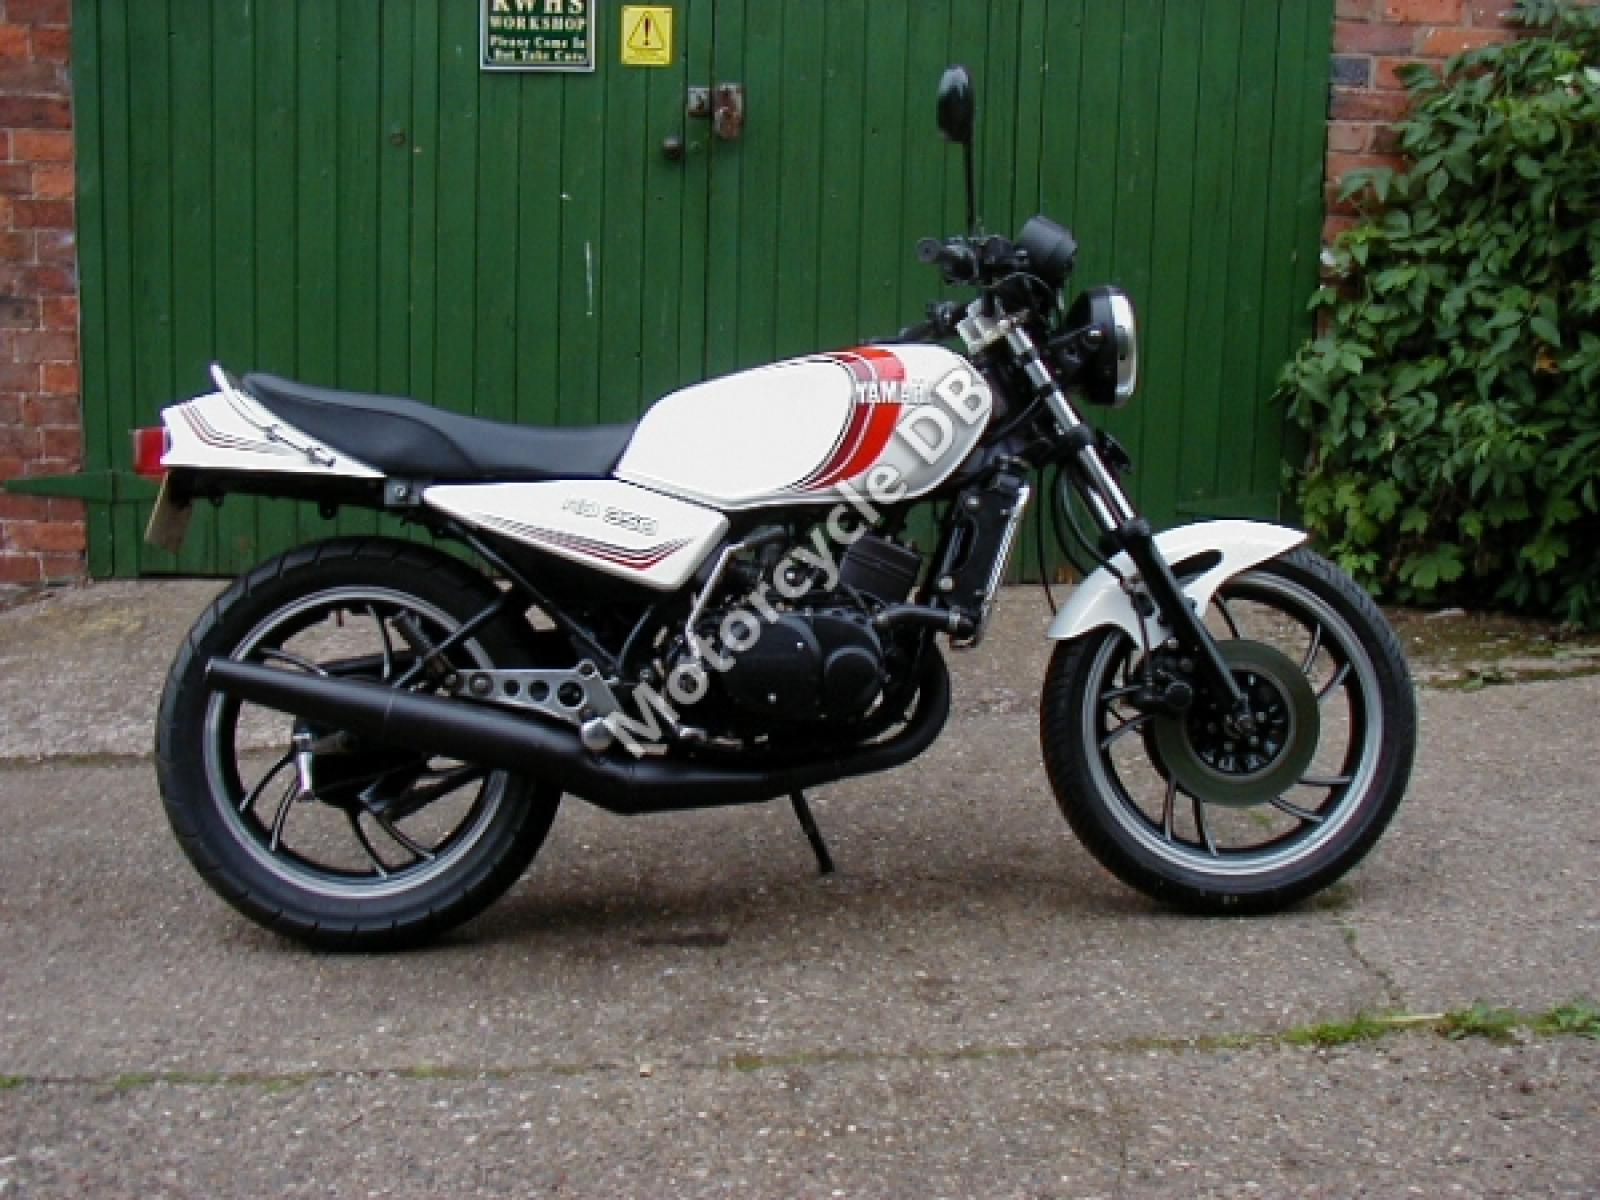 Yamaha RD 250 LC (reduced effect) #1